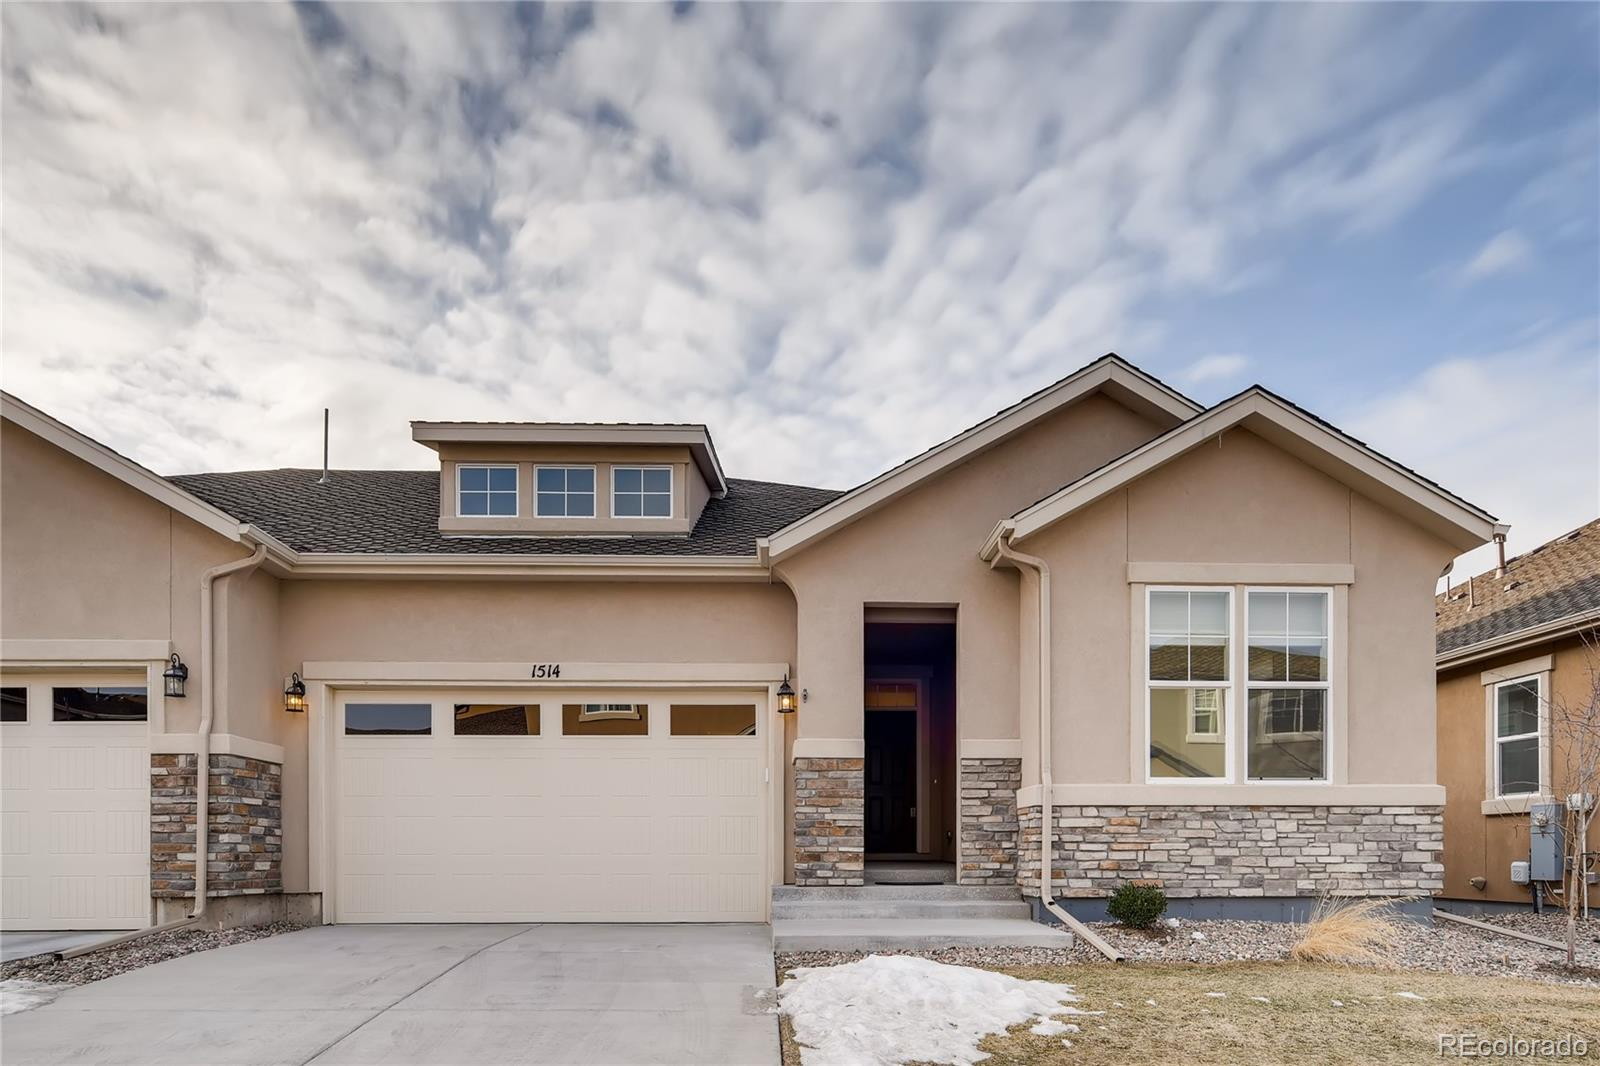 MLS# 5348867 - 1 - 1514 Promontory Bluff View, Colorado Springs, CO 80921